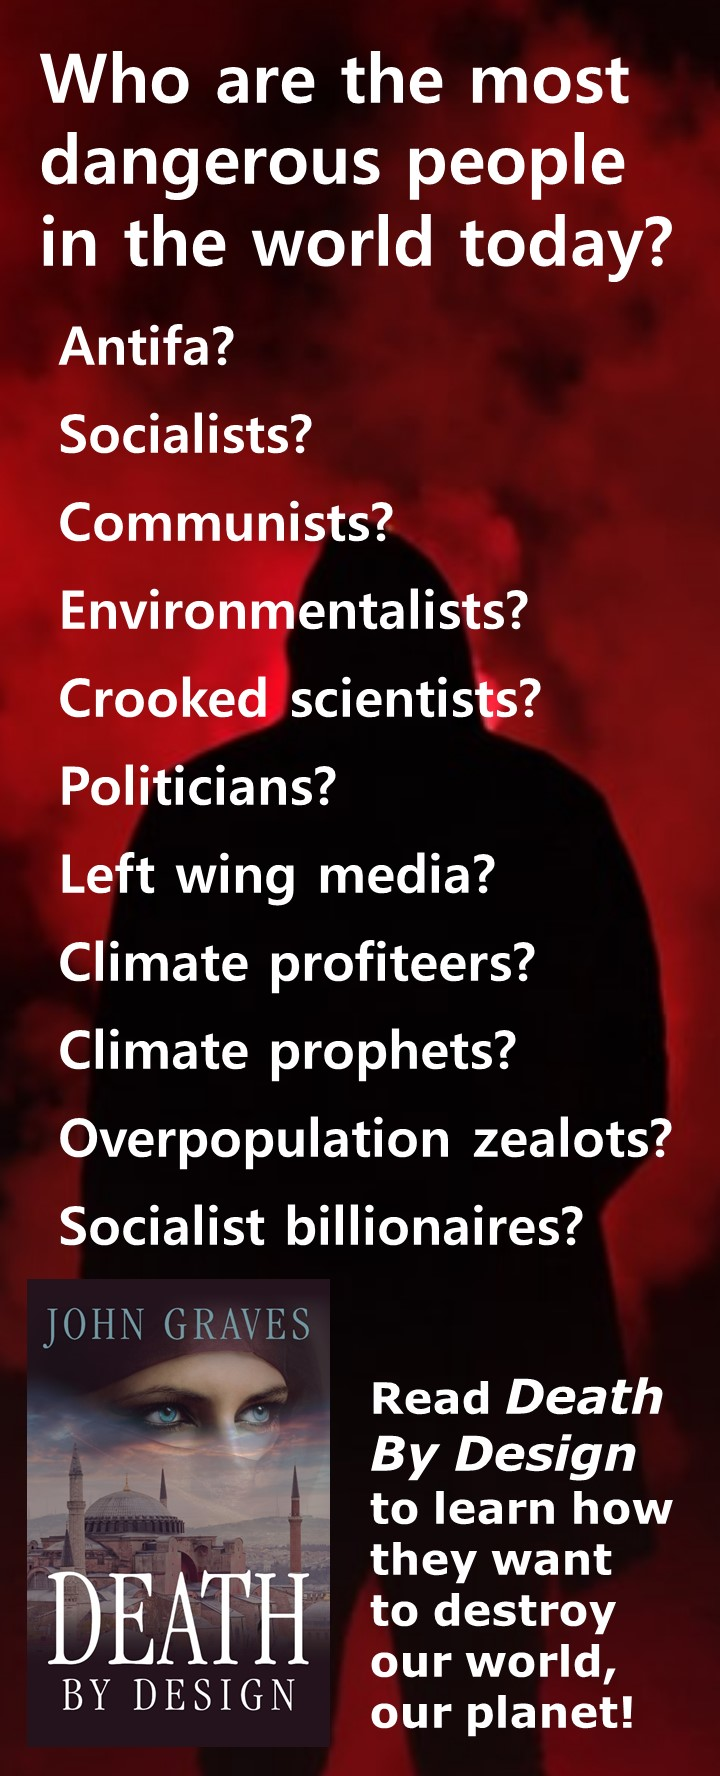 Who Are the Most Dangerous People in the World Today? Antifa? Socialists? Communists? Environmentalists? Crooked scientists? Politicians? Left wing media? Climate profiteers? Climate prophets? Overpopulation zealots? Socialist billionaires?